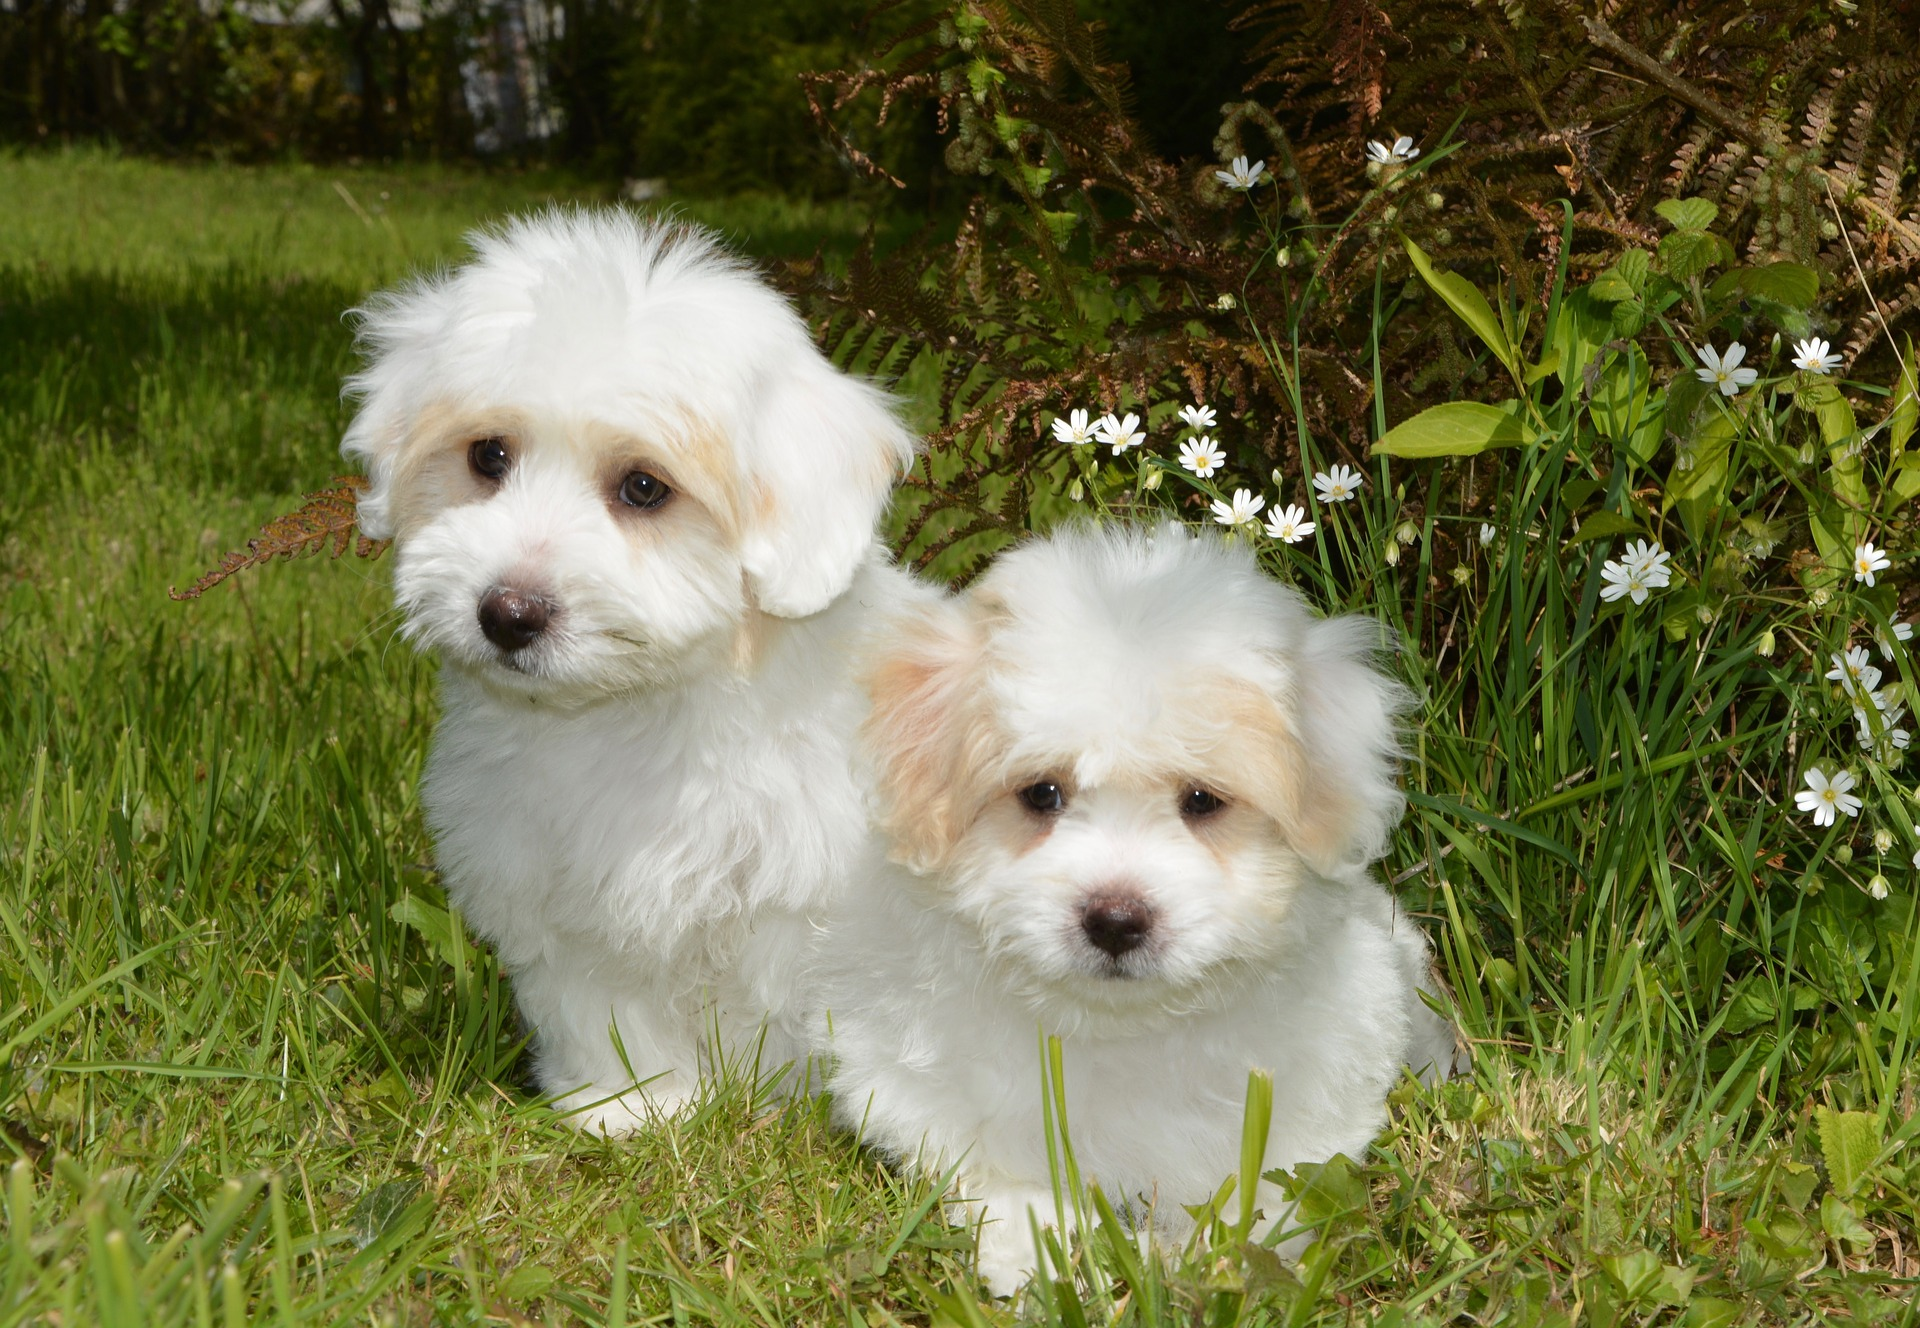 2 white fluffy puppies